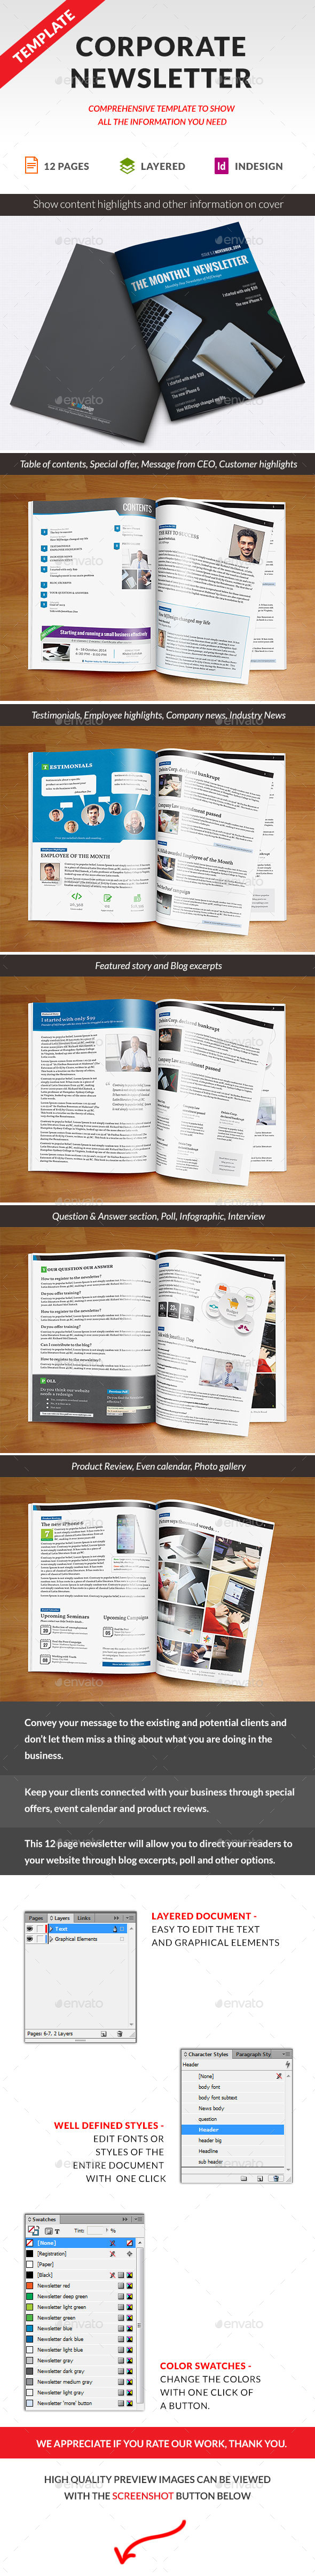 GraphicRiver Corporate Newsletter Indesign Template 9220216